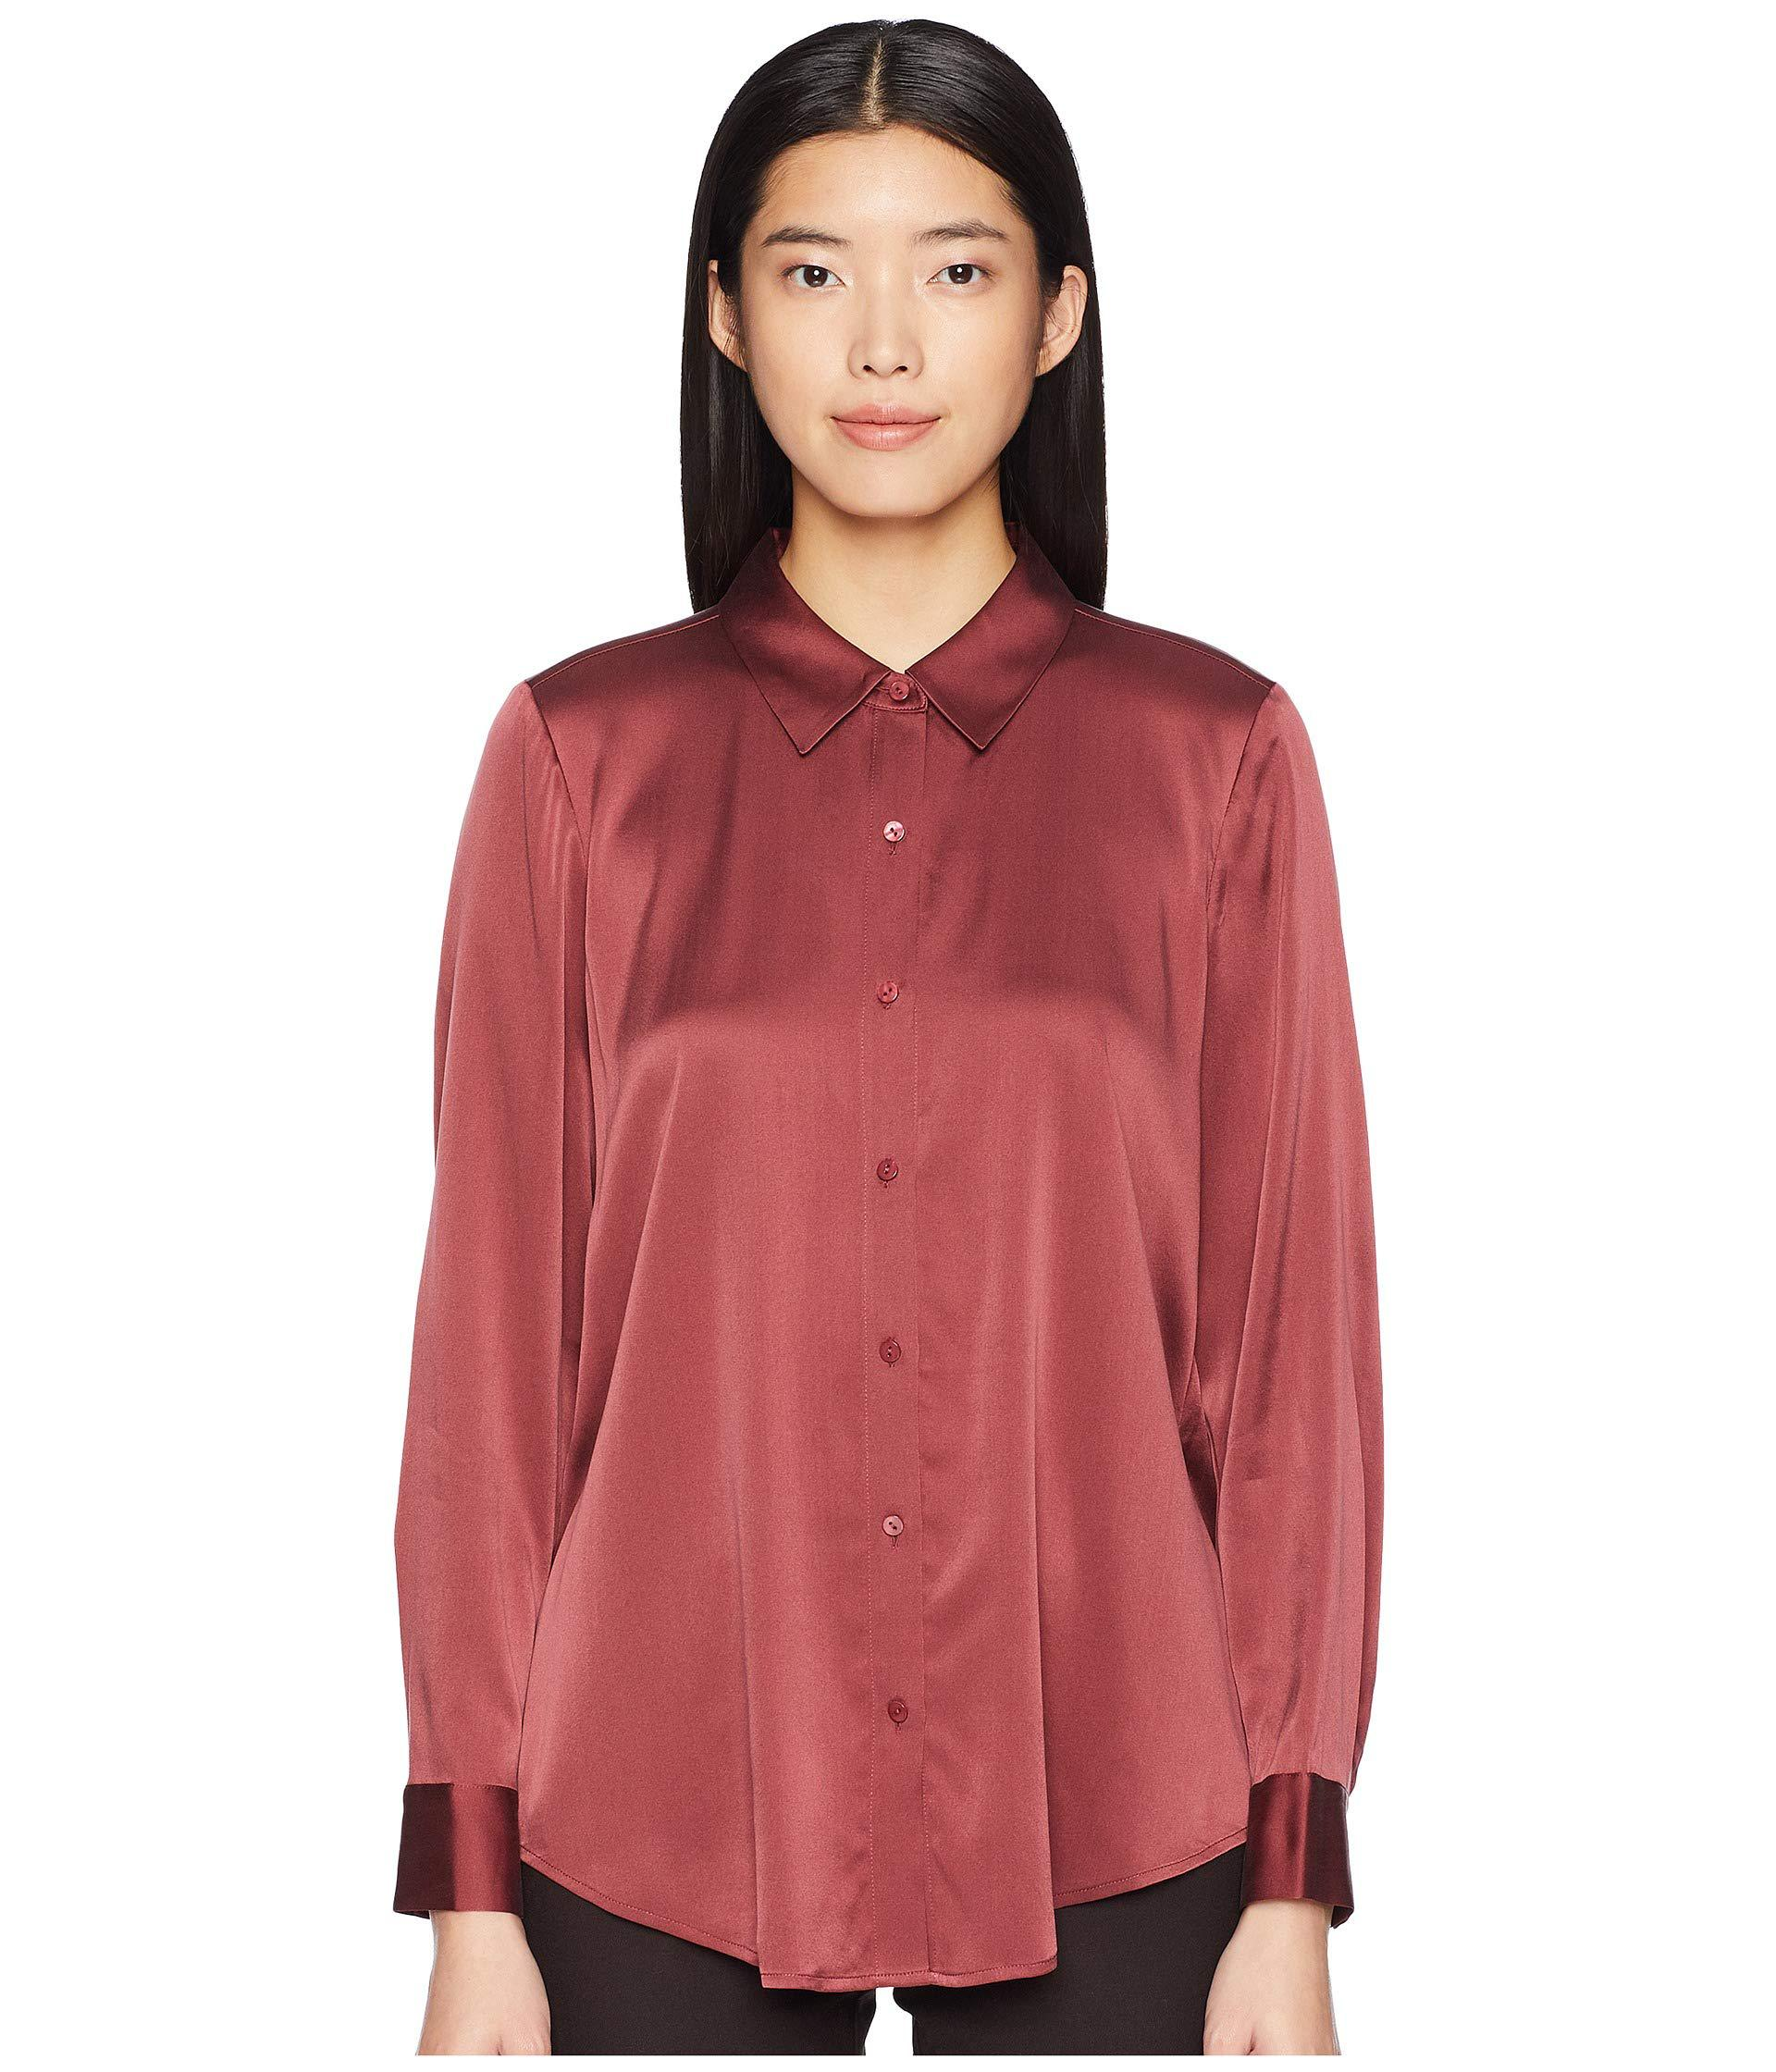 9b3058ee2770ad Eileen Fisher - Red Stretch Silk Charmeuse Classic Collar Shirt - Lyst.  View fullscreen